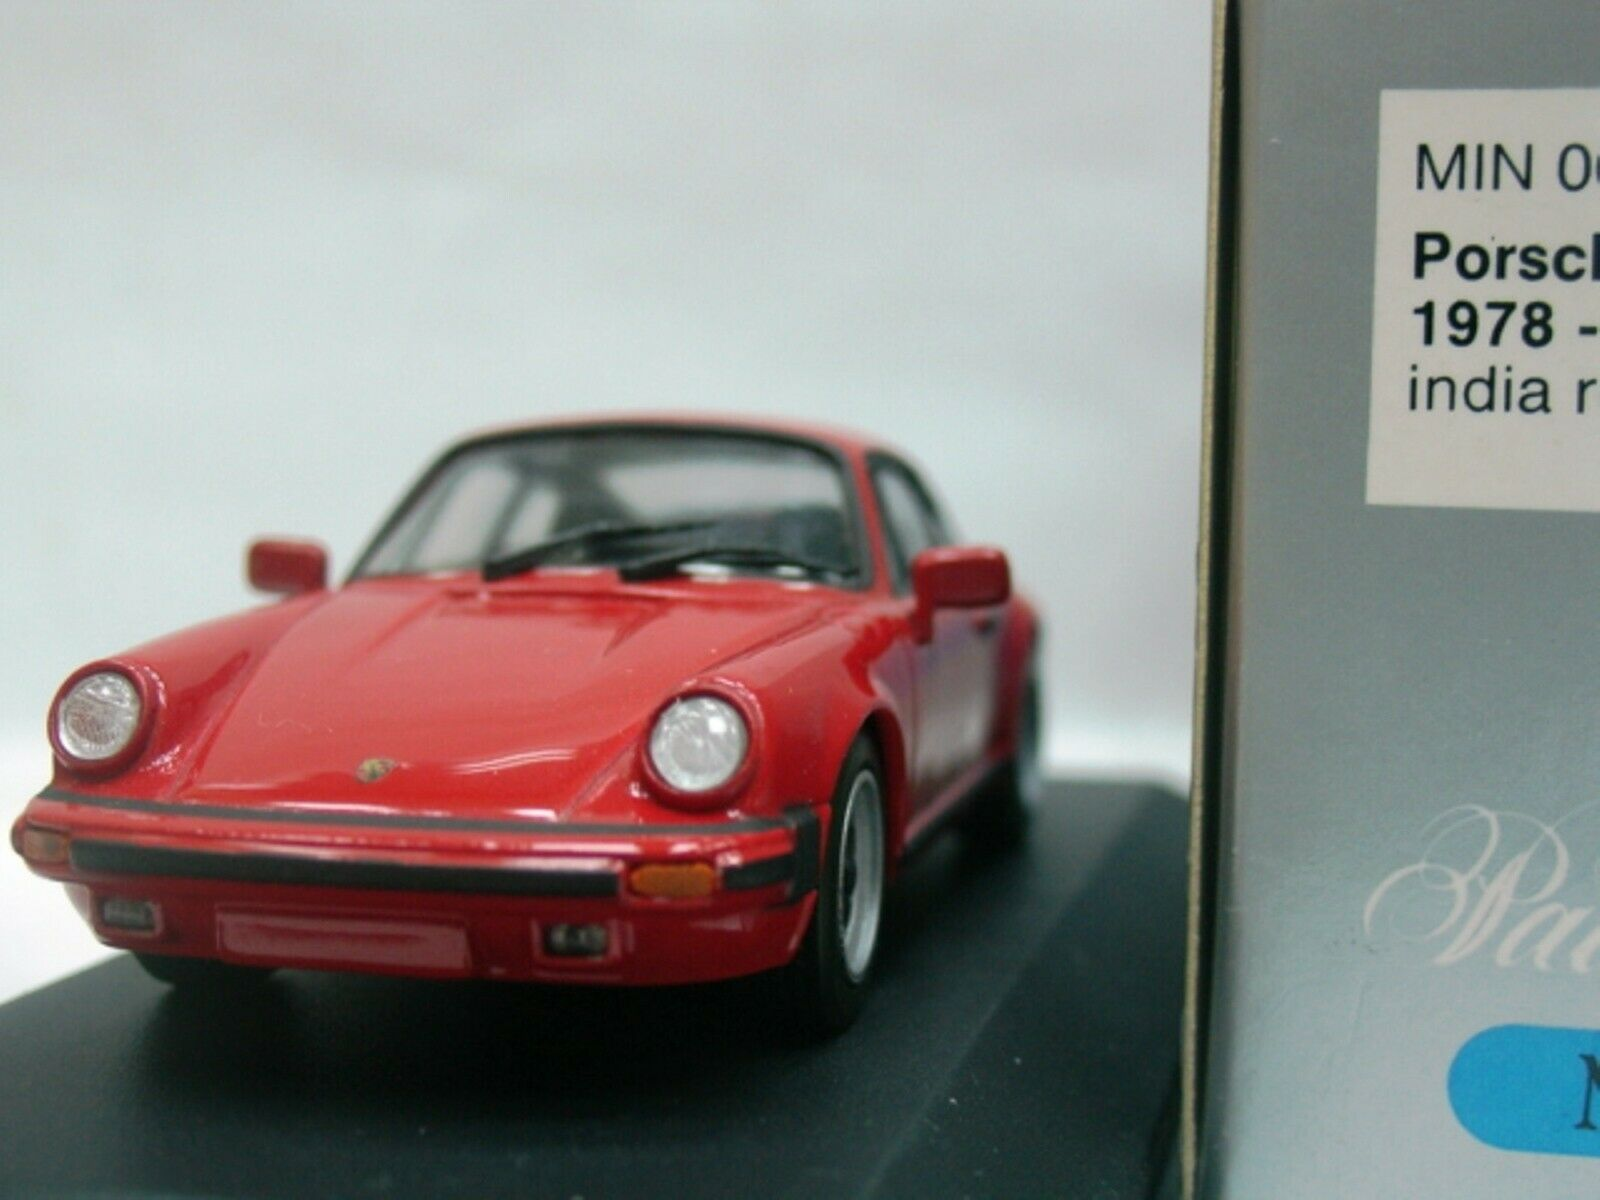 WOW EXTREMELY RARE Porsche 930 1983 911 3.0 SC G-Model Coupe Red 1 43 Minichamps